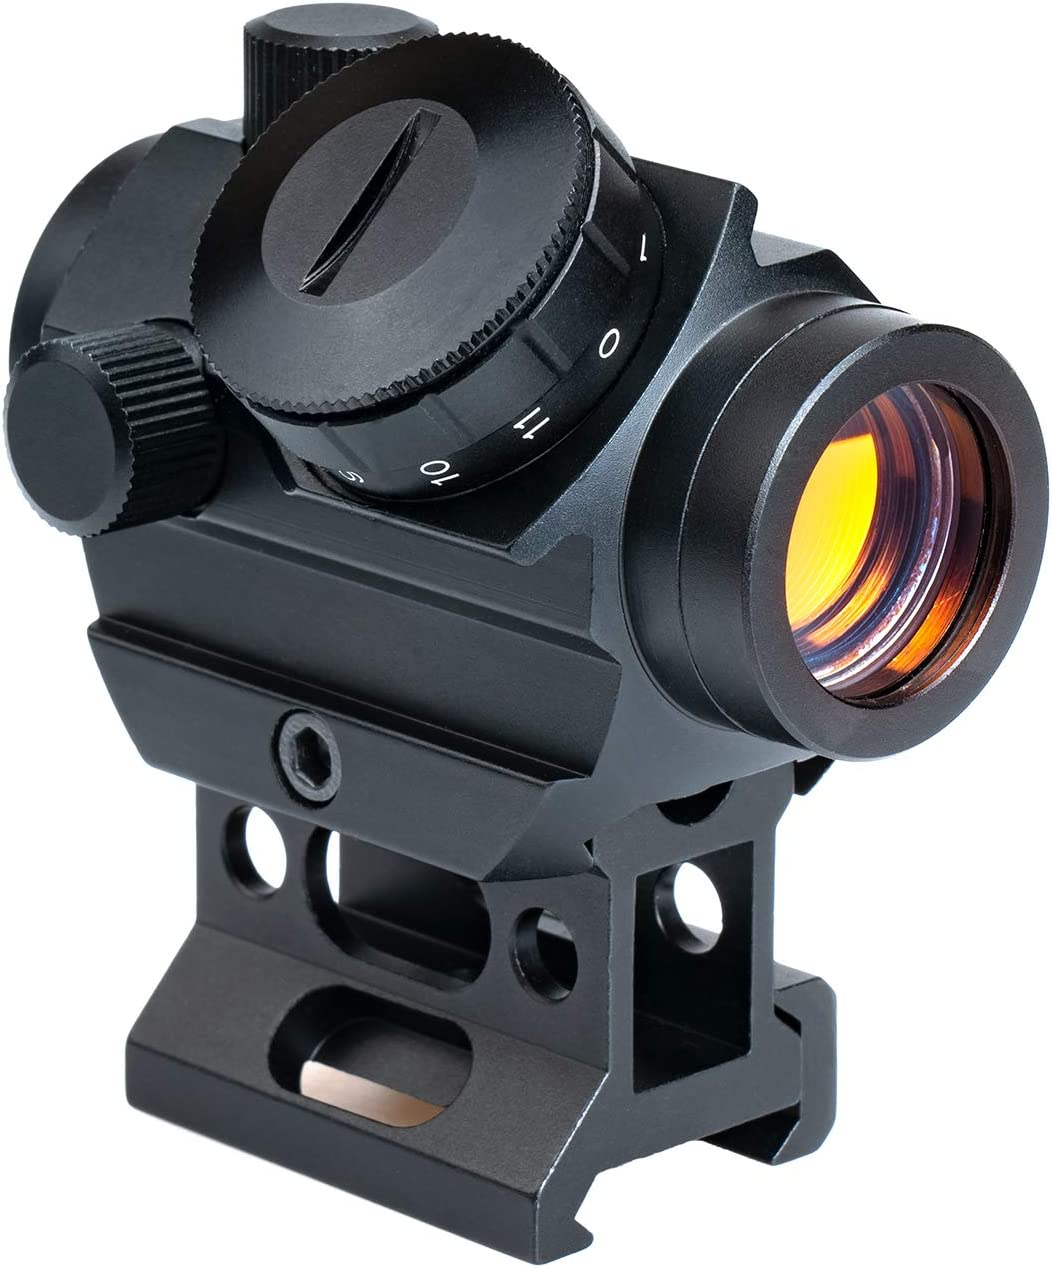 Sale Viiko Direct sale of manufacturer Red Dot Sight 2 MOA Scope Amber Lens 1x25 Coating